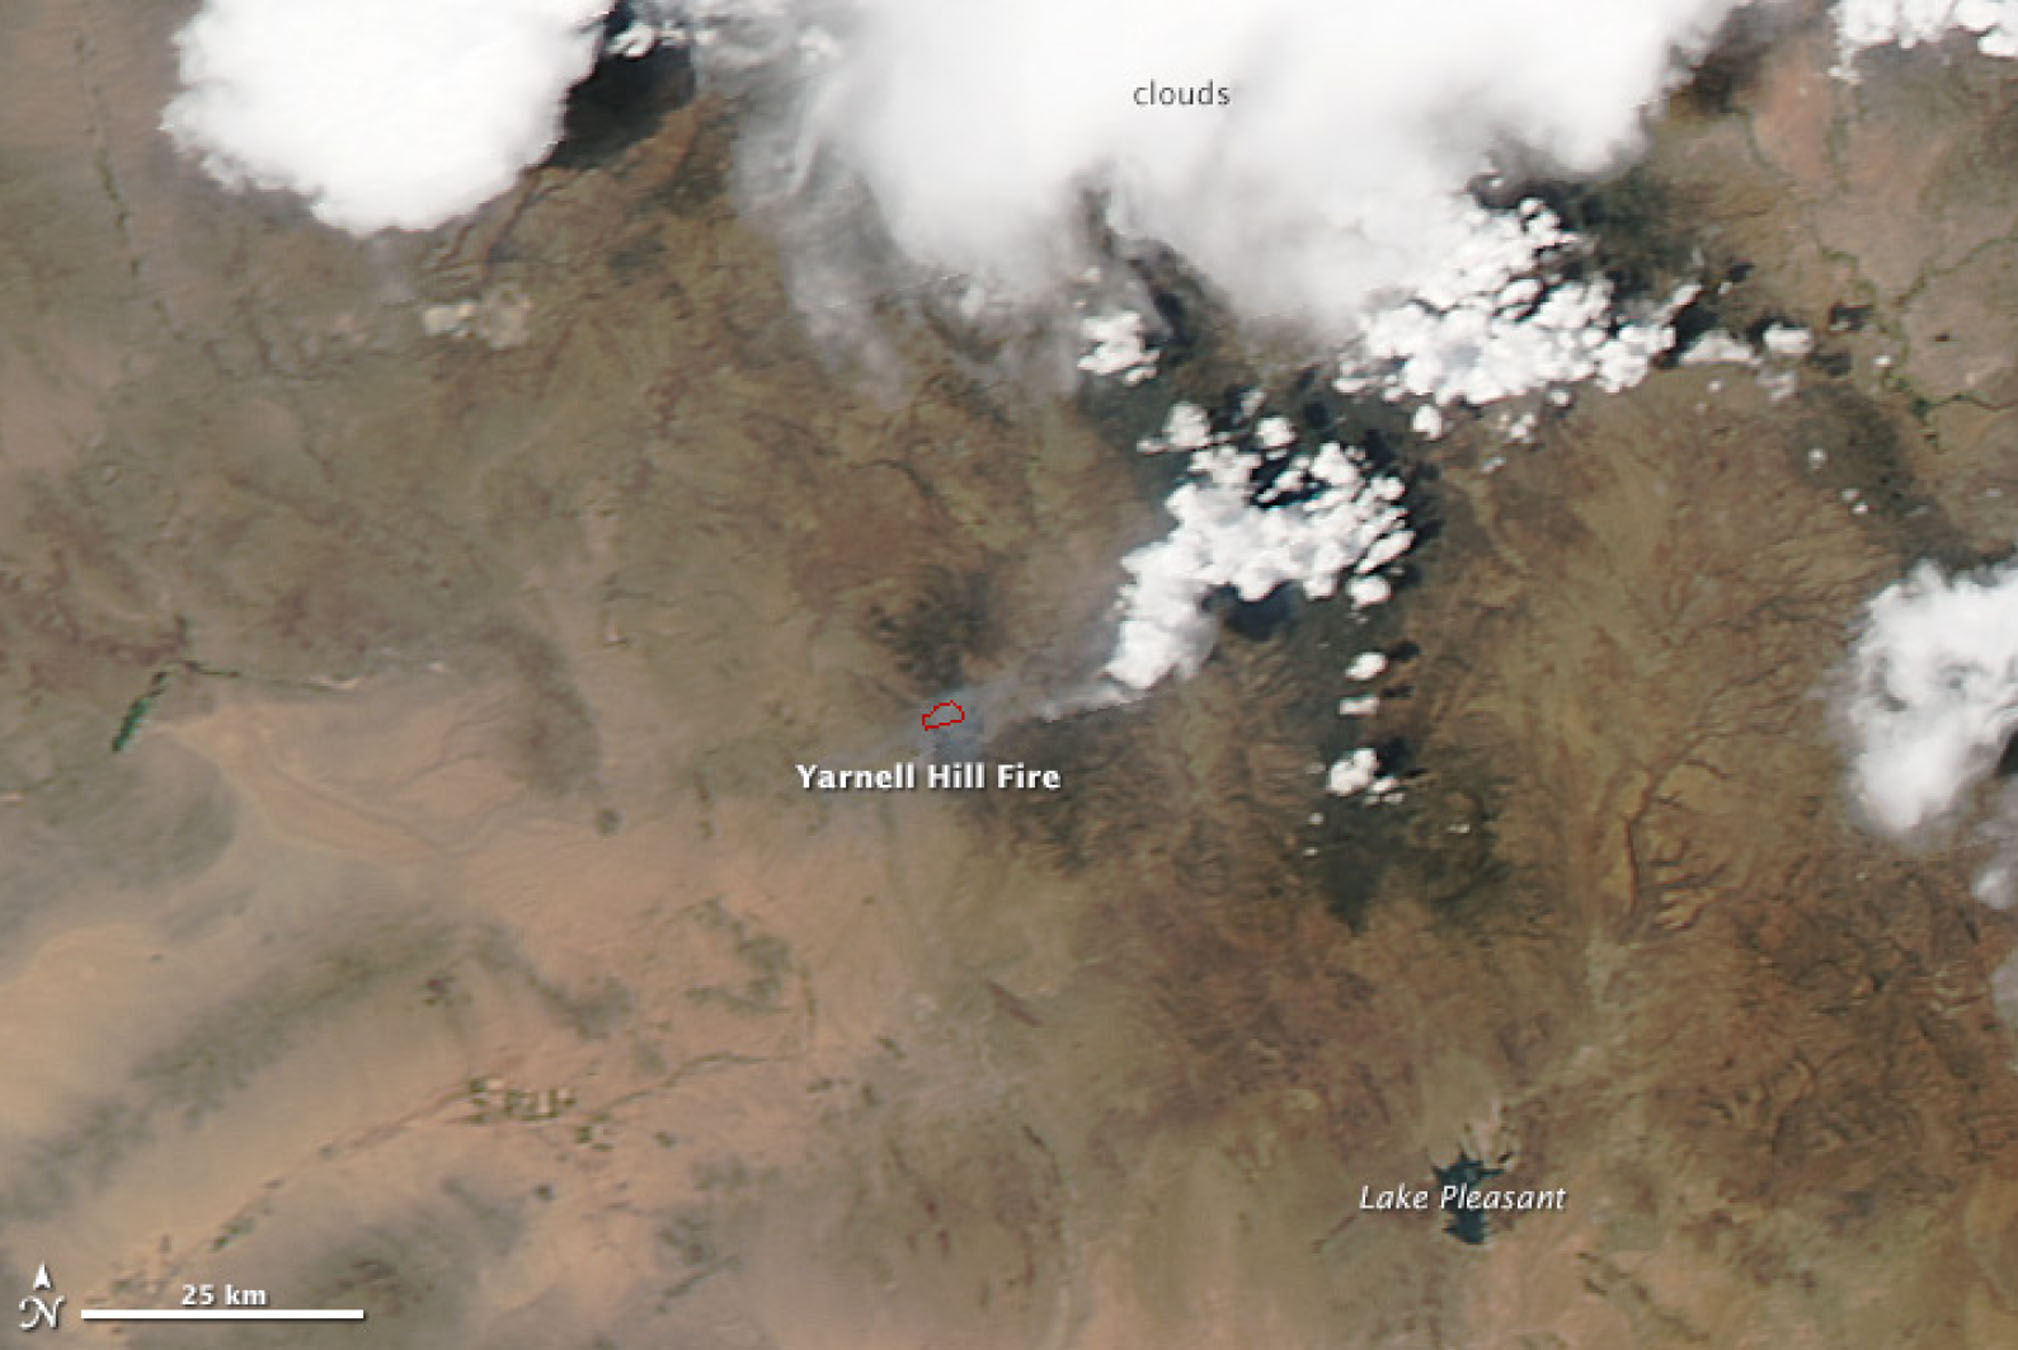 A Moderate Resolution Imaging Spectroradiometer (MODIS) satellite image of the Yarnell Hill fire on July 1, one day after the blaze killed 19 hotshot firefighters. Red outlines are hot spots associated with fire.